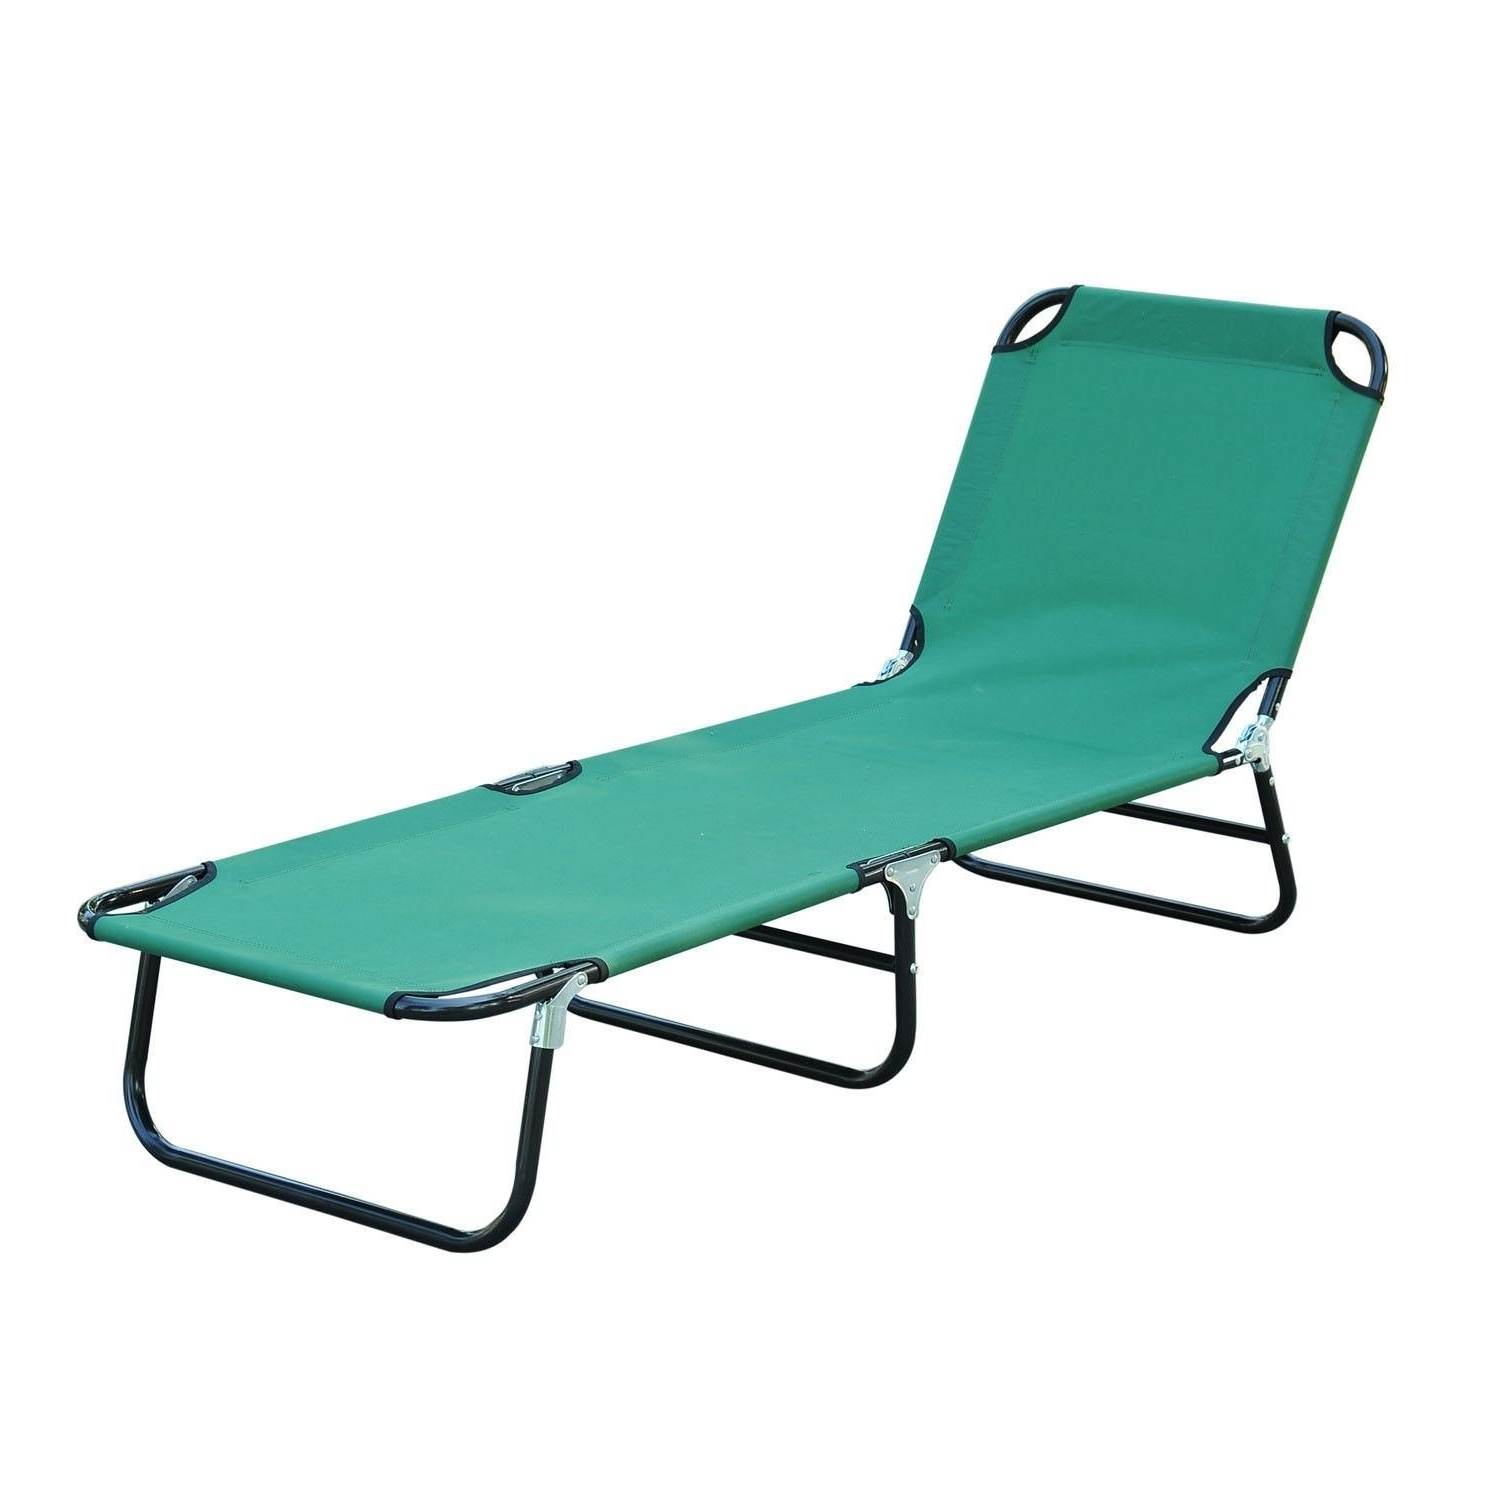 Portable Outdoor Chaise Lounge Chairs Pertaining To Most Recently Released Amazon : Outdoor Sun Chaise Lounge Recliner Patio Camping Cot (View 15 of 15)